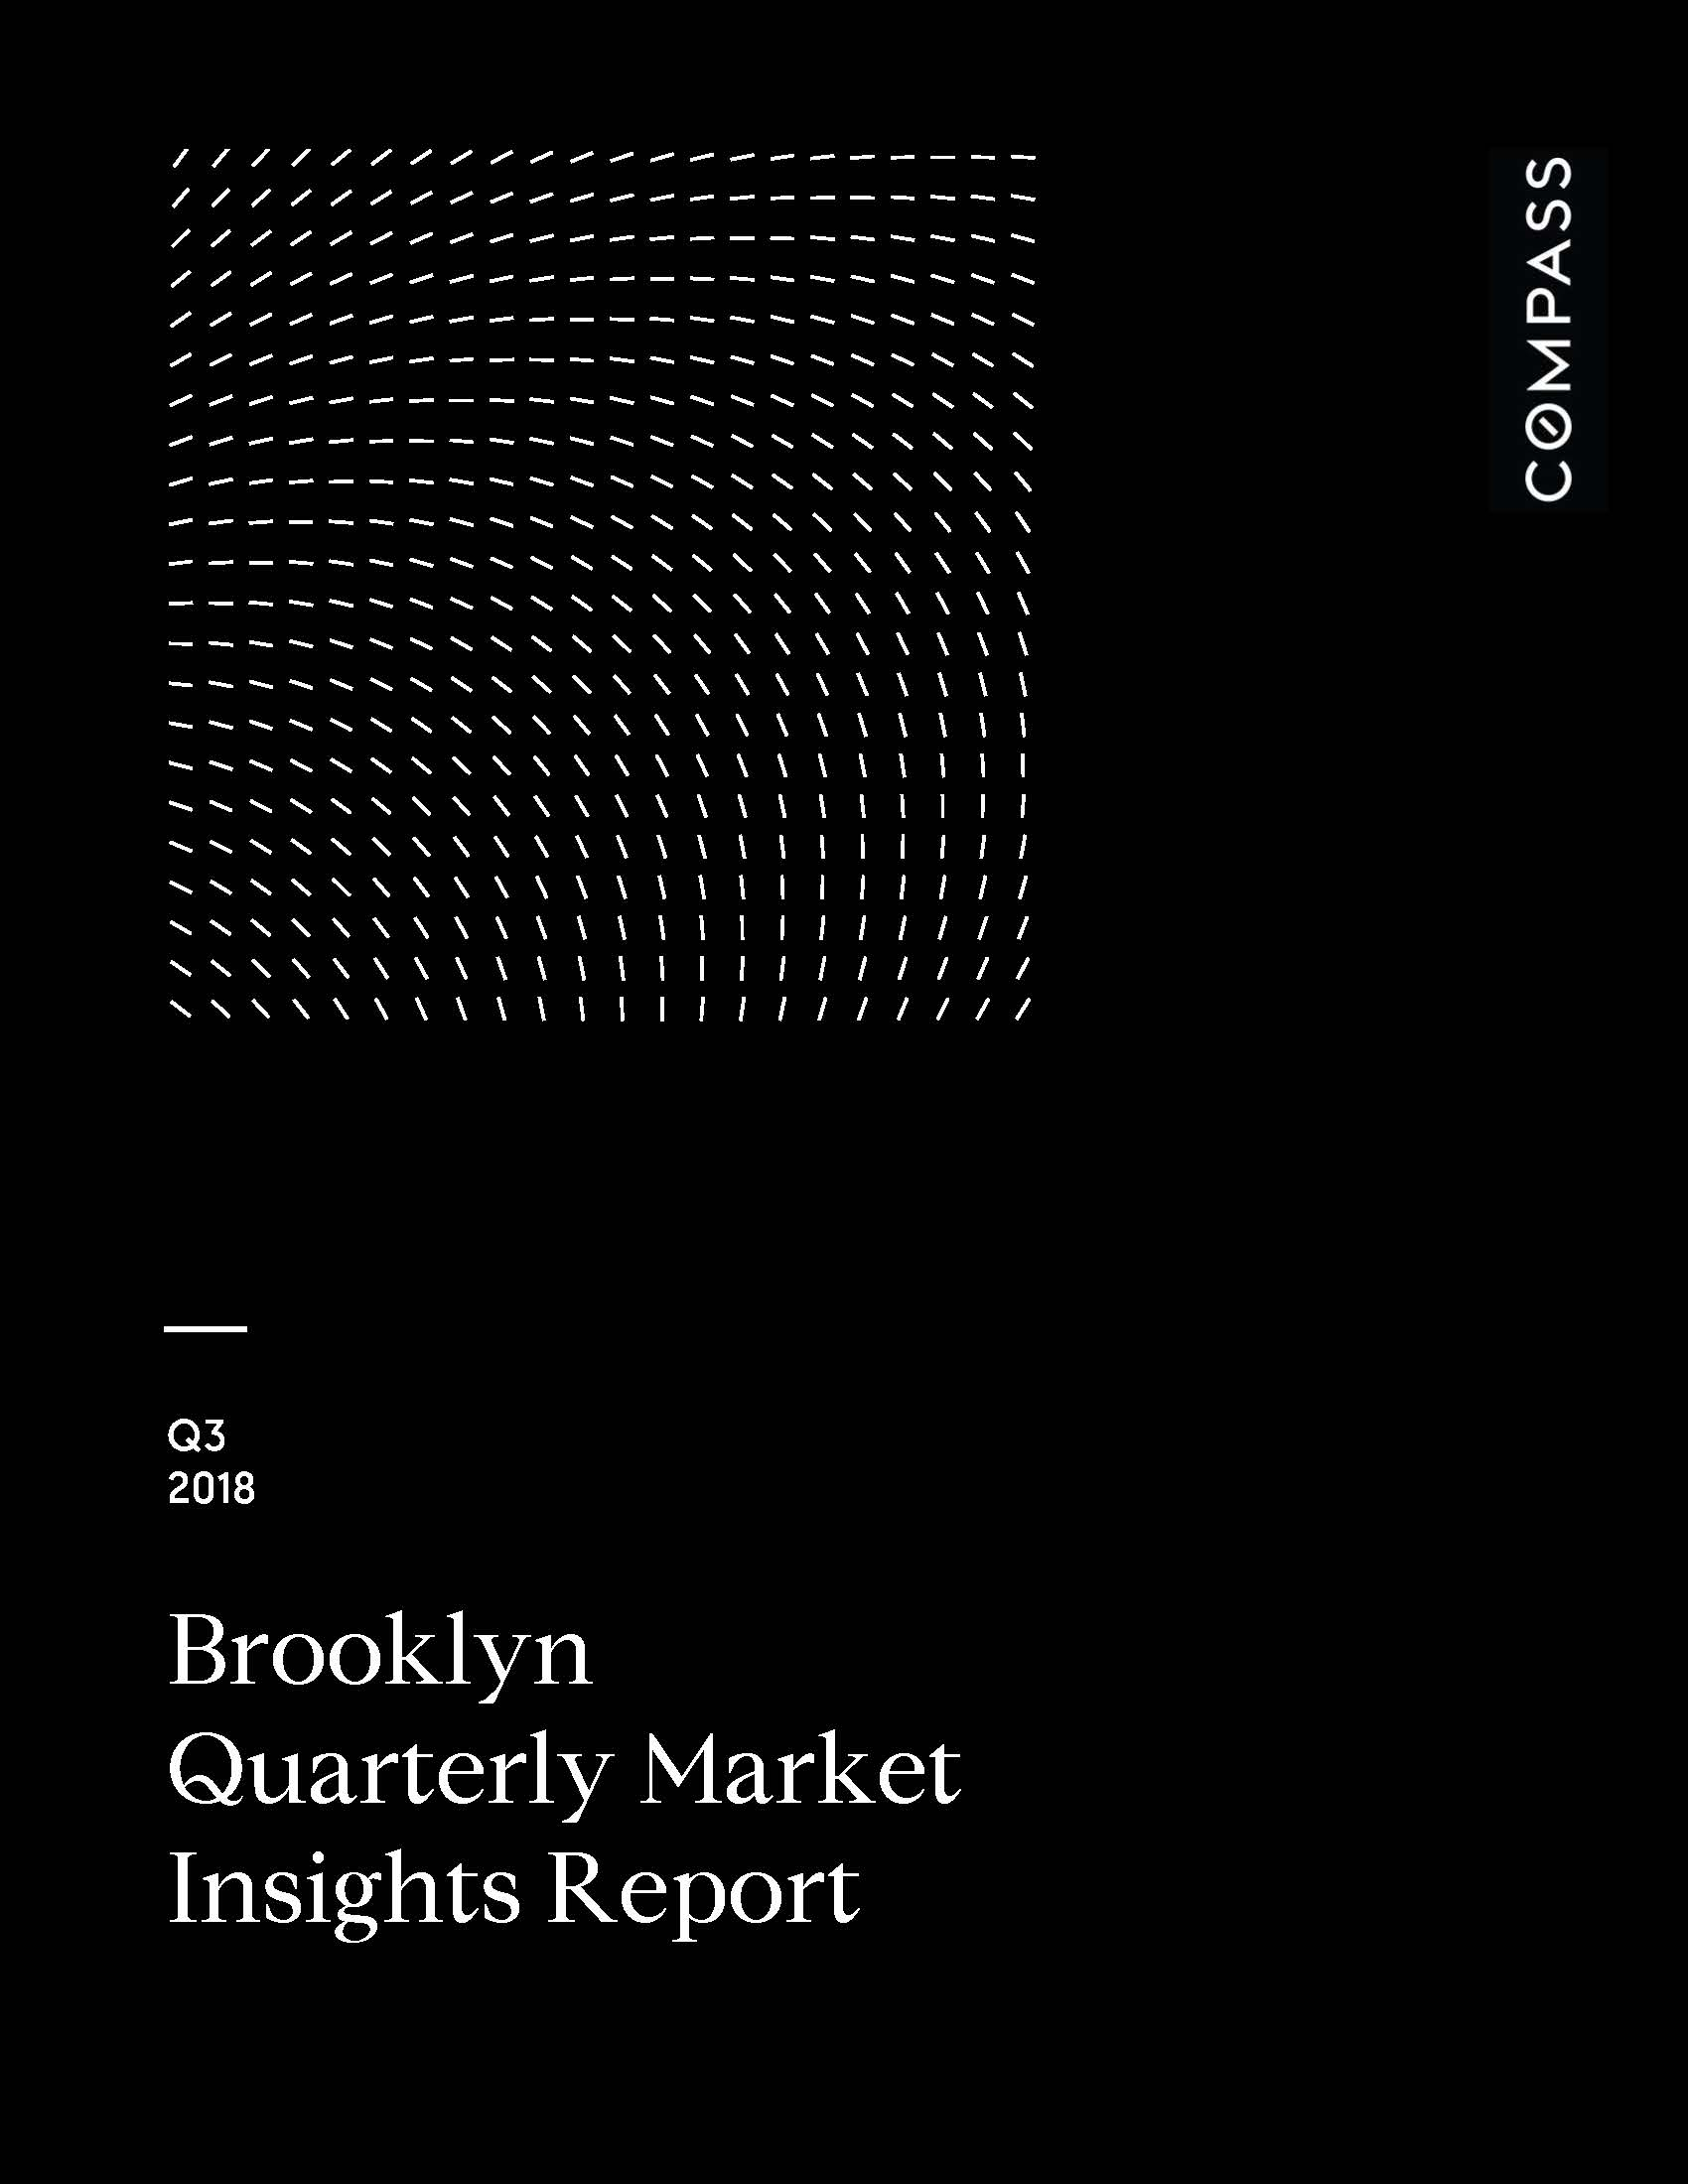 Brooklyn Quarterly Market Insights Report - Q3 2018